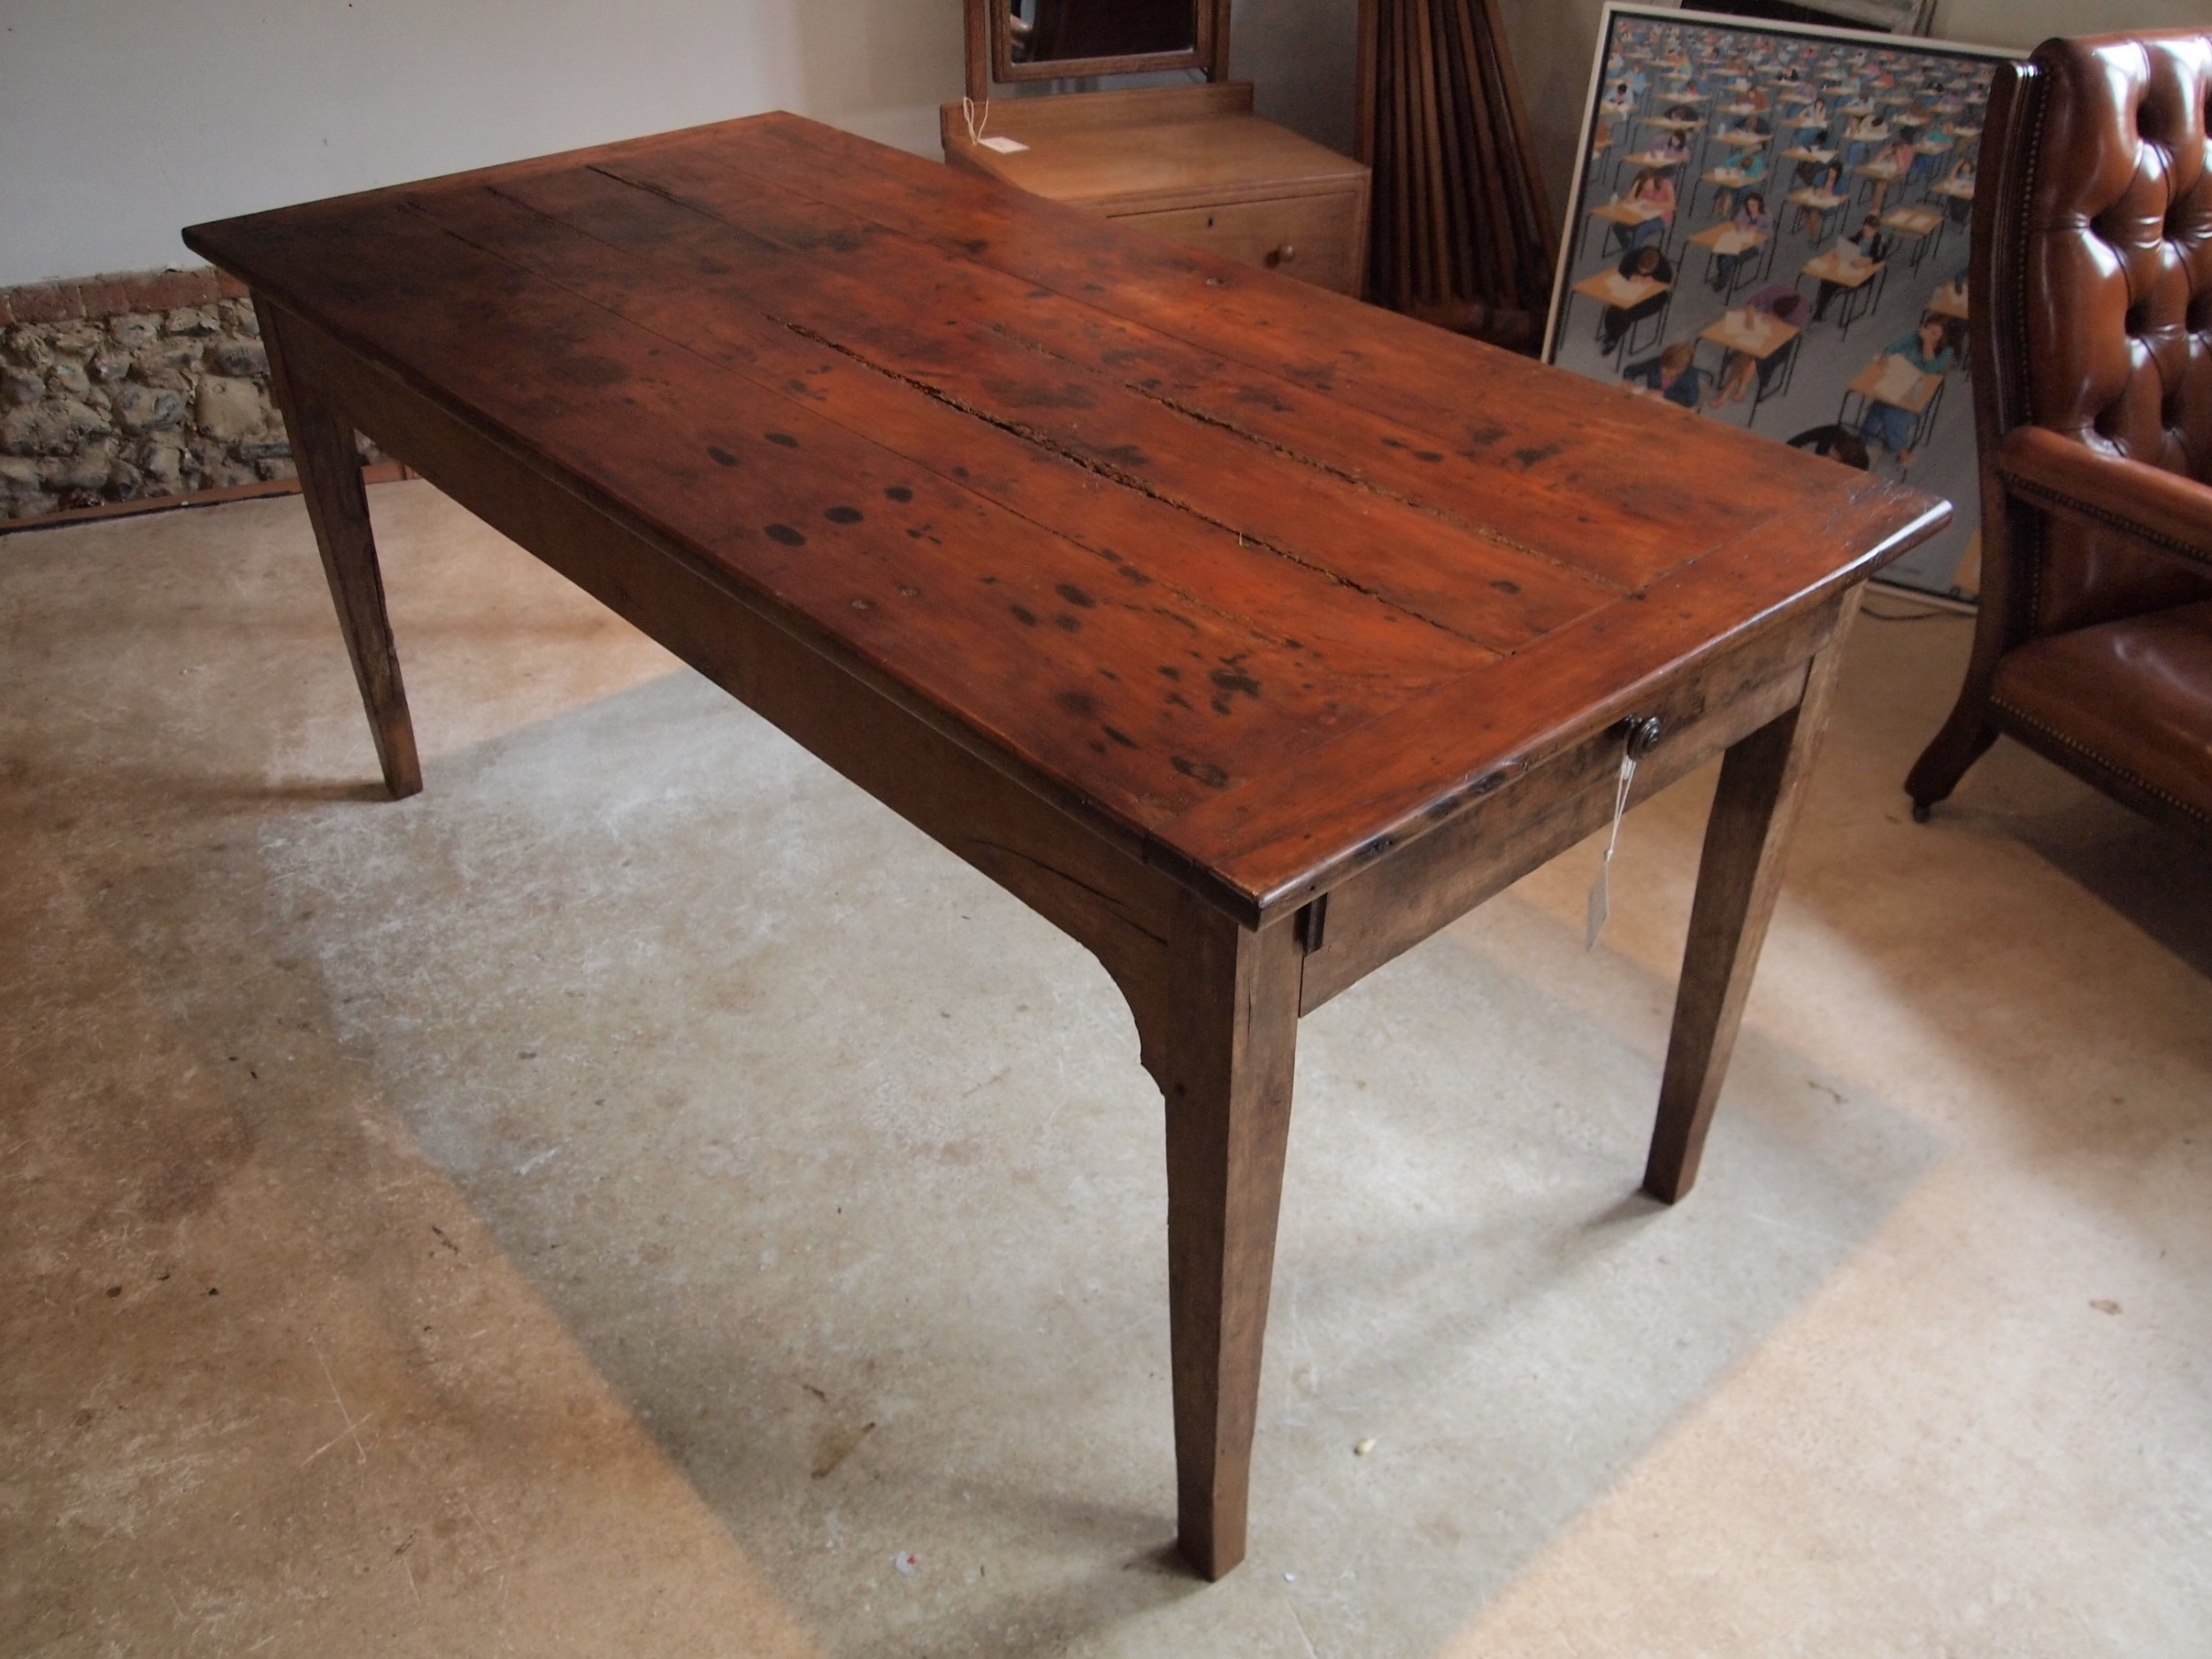 table refectory farmhouse french cherry wood c1780